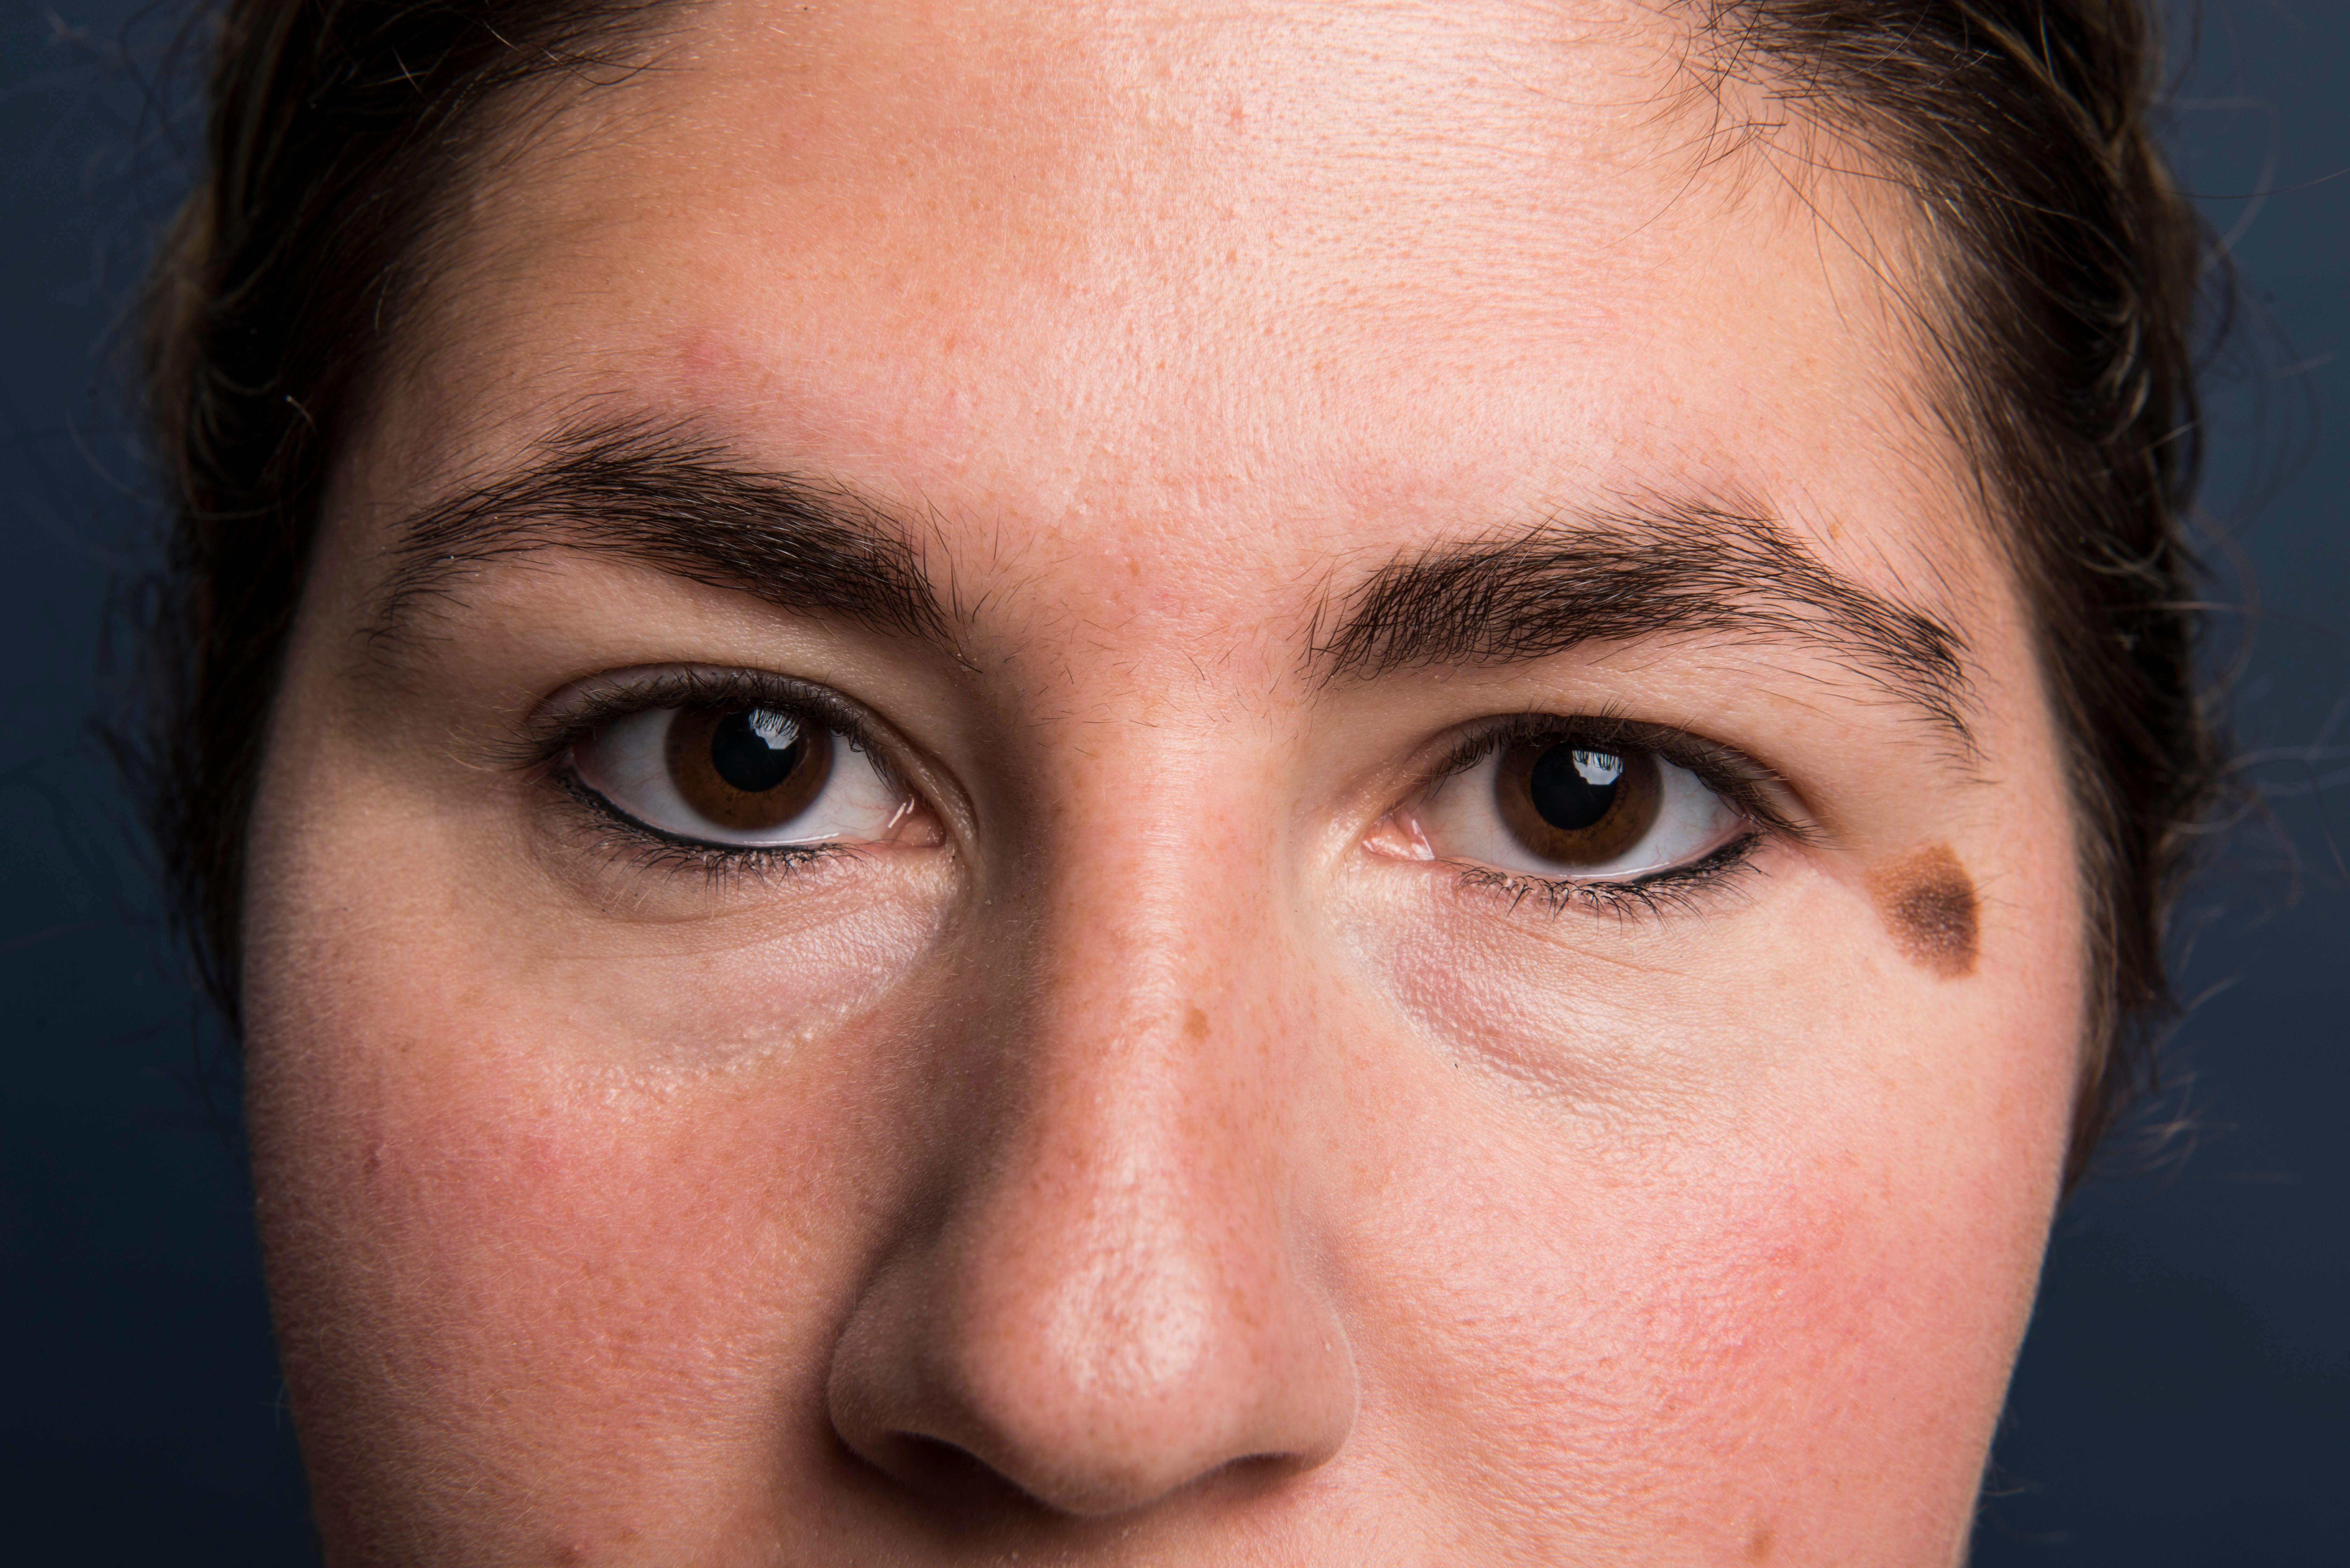 NEW YORK, NY - AUGUST 17: Jamie Feldman poses for a portrait with untouched eyebrows before and eyebrow experiment in New York on Wednesday, Aug. 17, 2016. (Photo by Damon Dahlen, Huffington Post) *** Local Caption ***